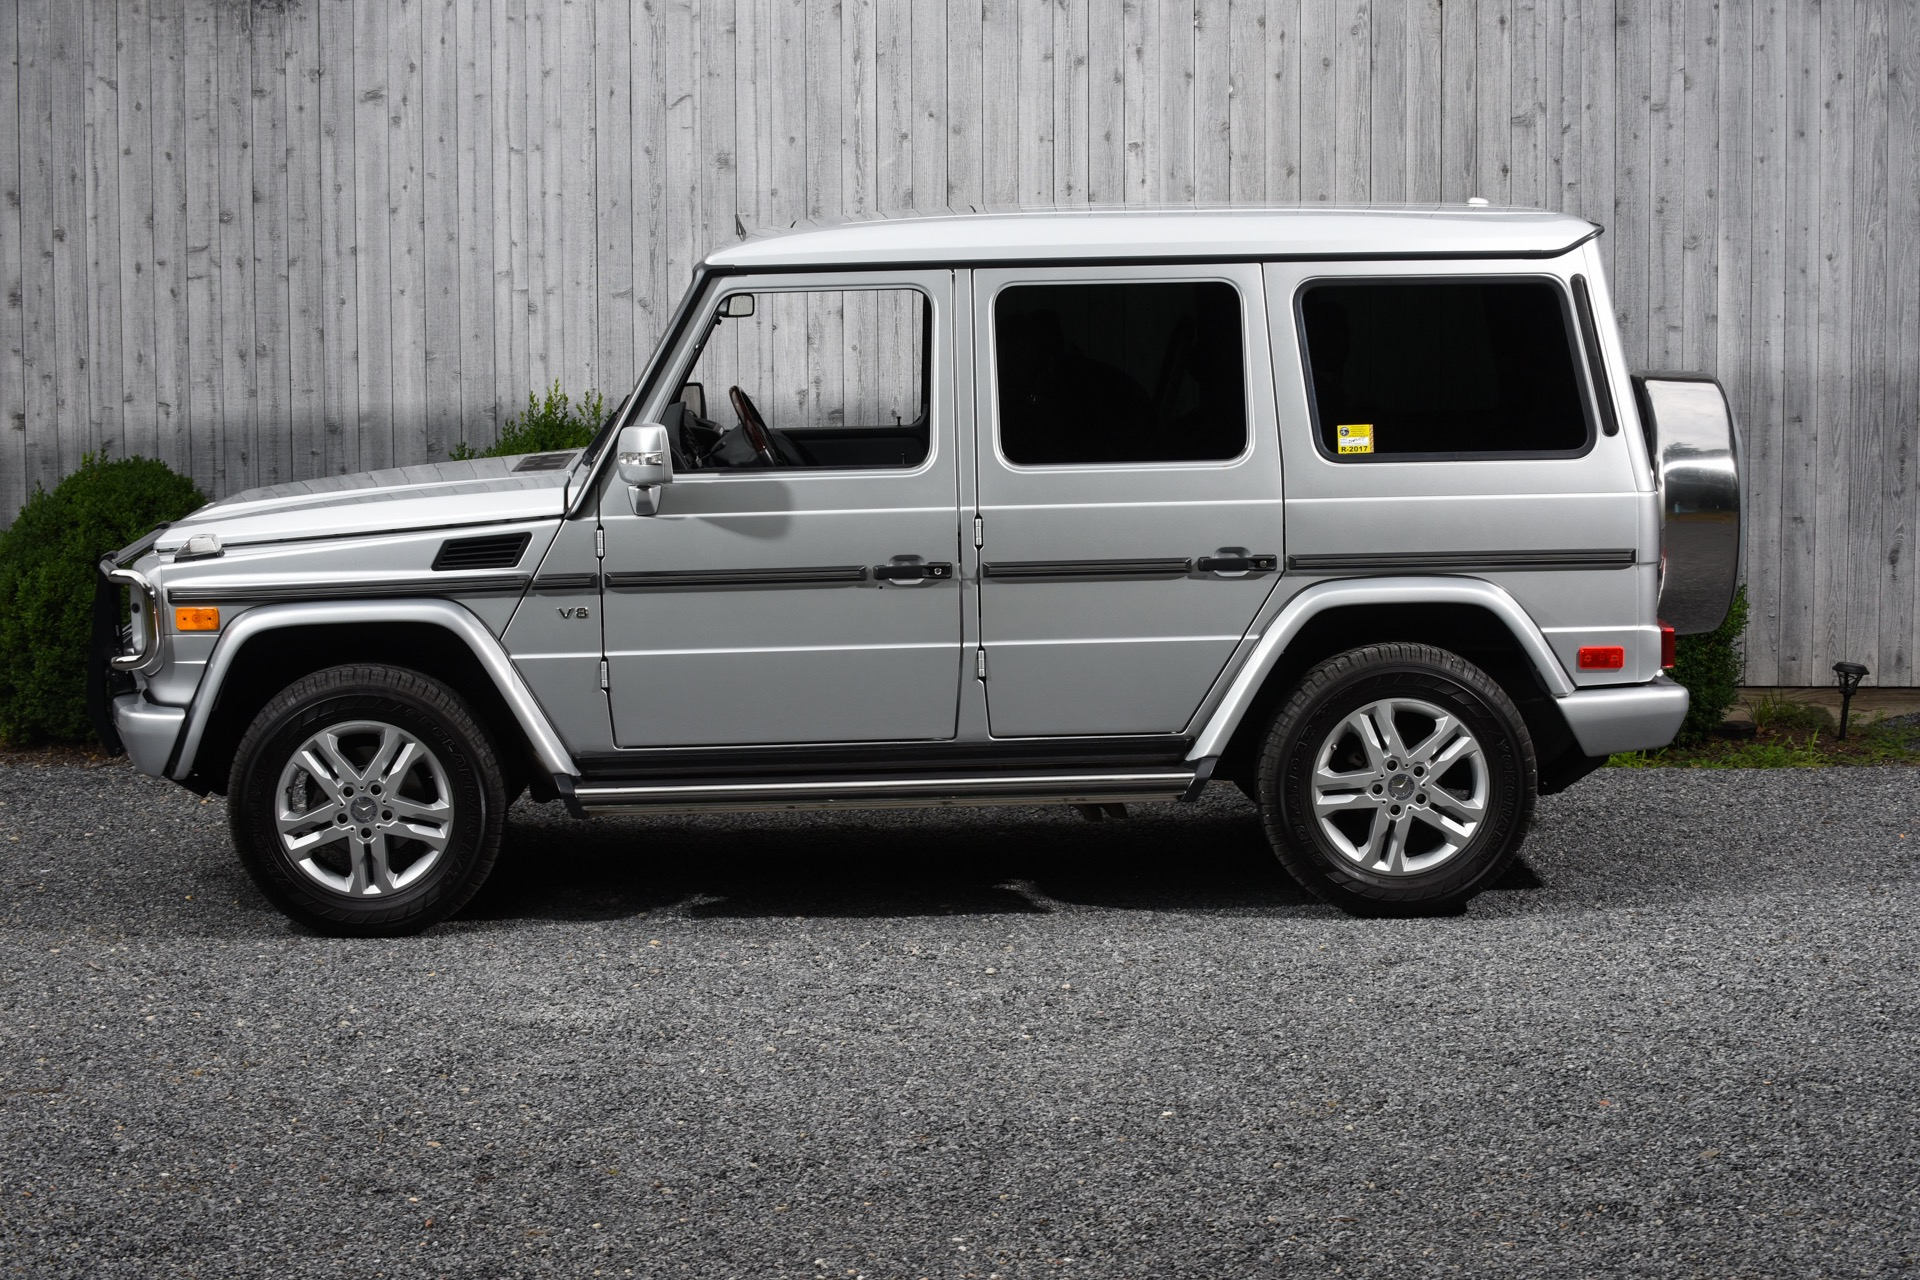 2012 mercedes benz g class g 550 stock 27 for sale near for 2012 mercedes benz g class for sale